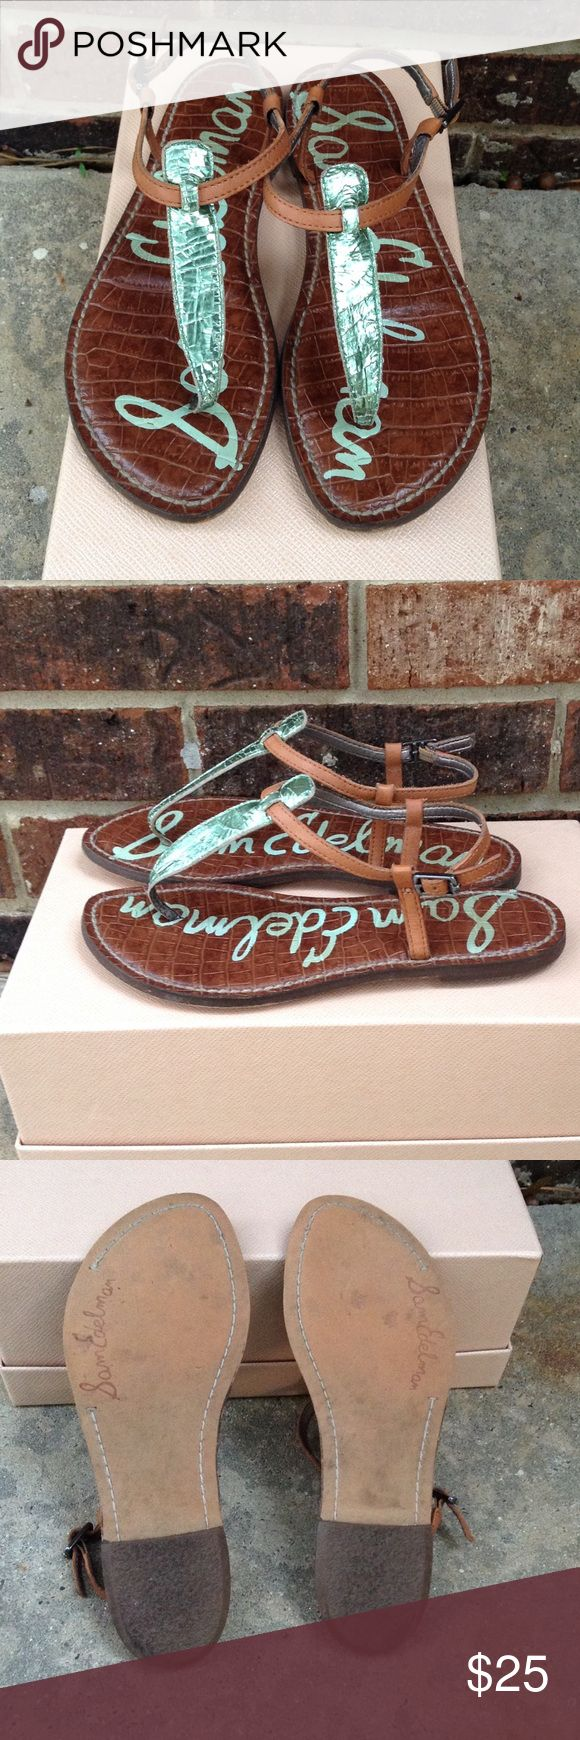 Sam Edelman GiGi sandal Sam Edelman Gigi sandal in metallic mint green. Love these but I am wanting just a tan pair. They are in perfect condition. Size 6. Sam Edelman Shoes Sandals